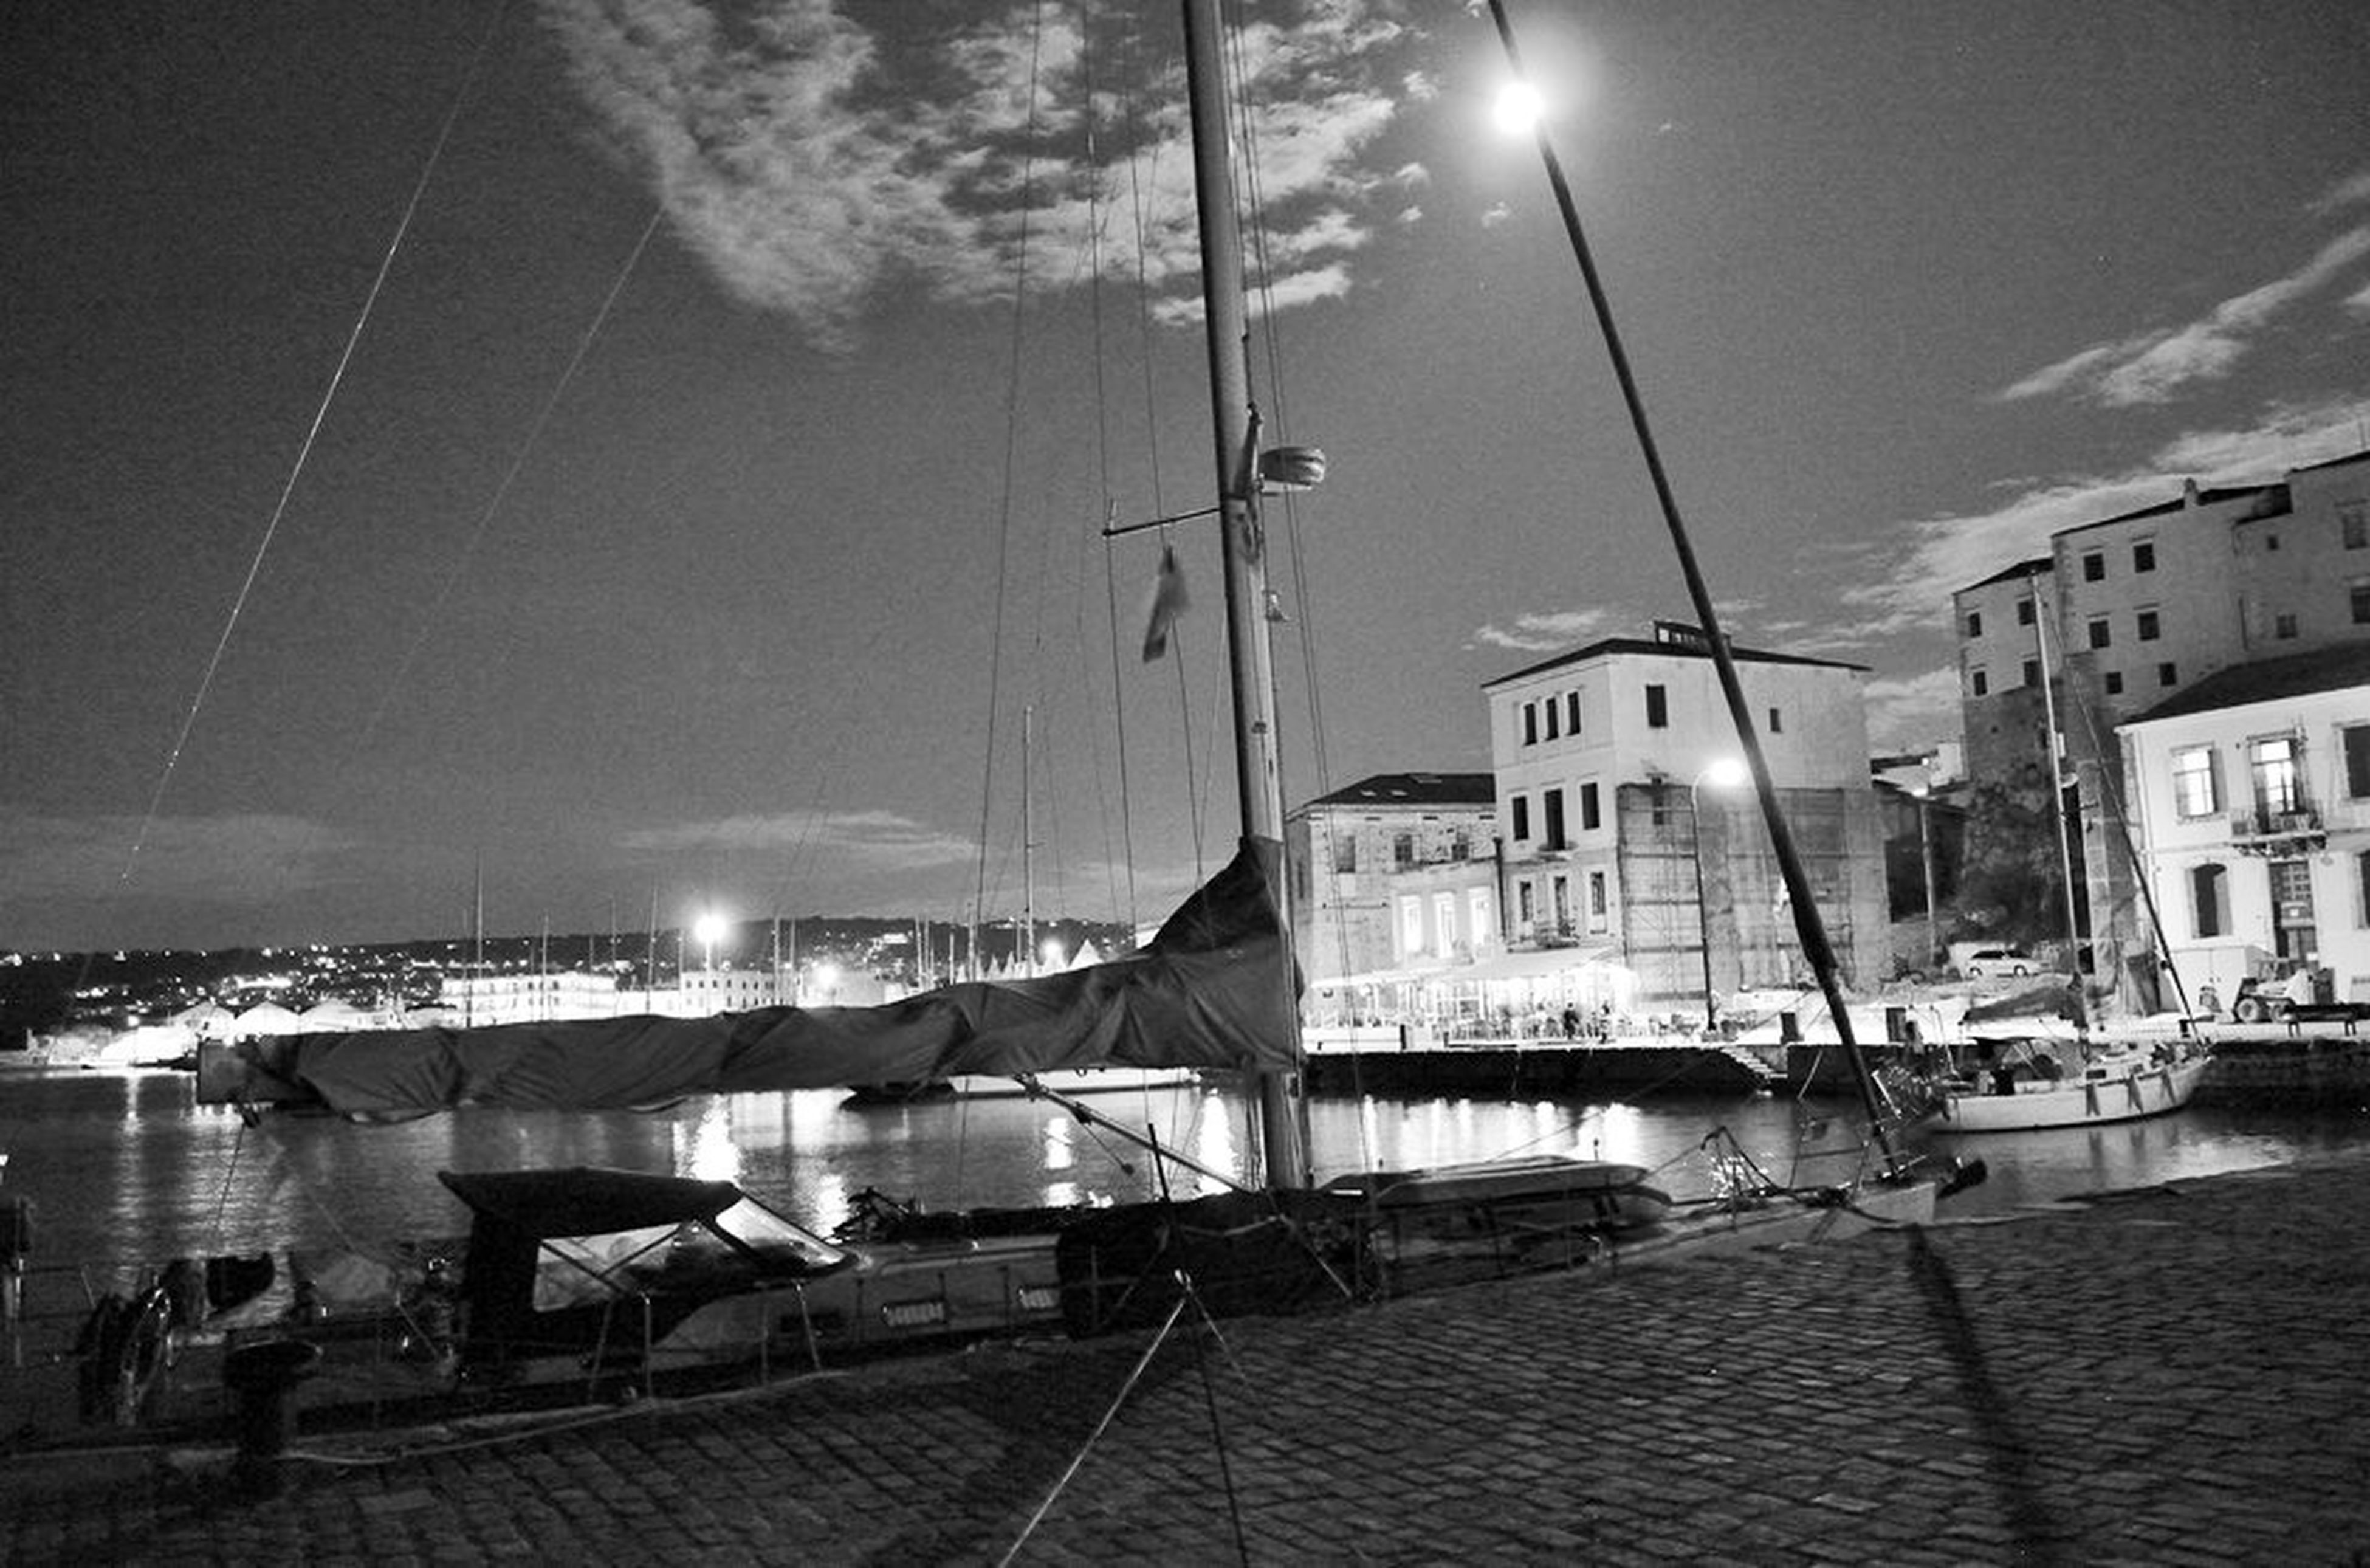 transportation, mode of transport, building exterior, sky, illuminated, nautical vessel, street light, built structure, water, architecture, night, moored, lighting equipment, reflection, boat, the way forward, outdoors, power line, mast, electricity